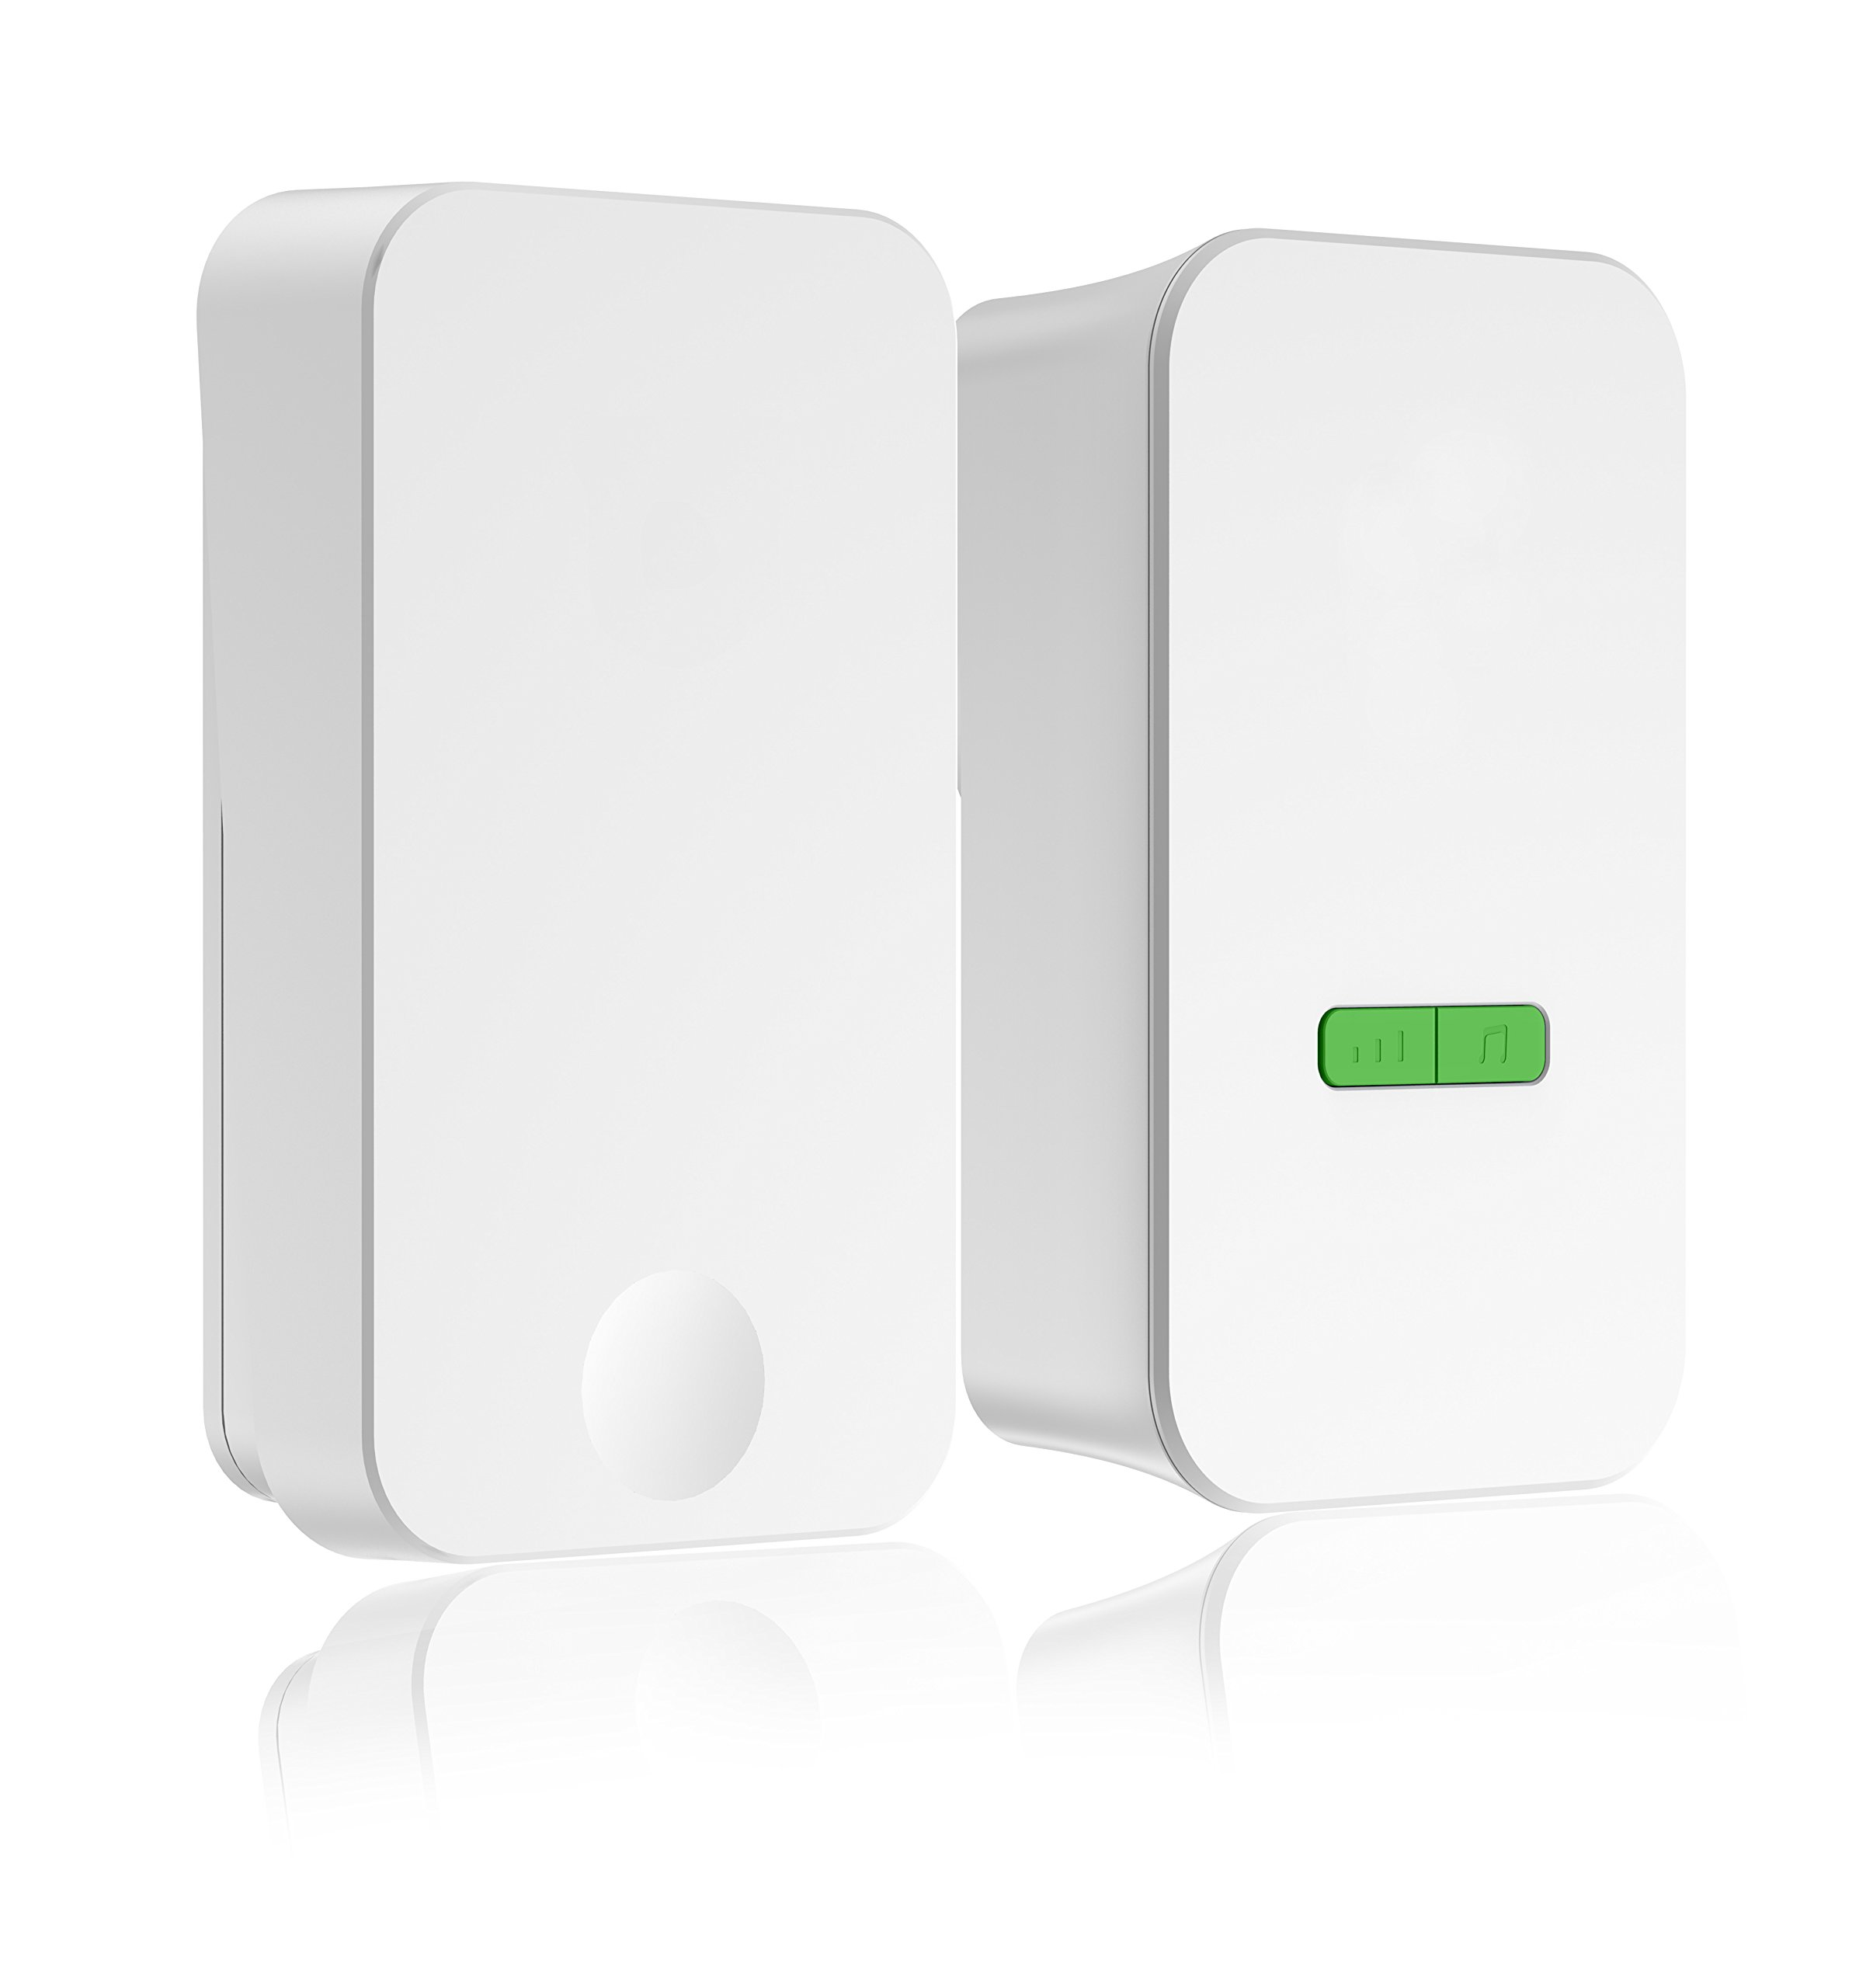 Wireless Doorbell Kit,No Batteries Required for Remote Button and Receiver,1 Remote Button and 1 Plug in Receiver with 36 Chimes, 5 Volume Levels,Operating Range at least 100 feet Indoor,White